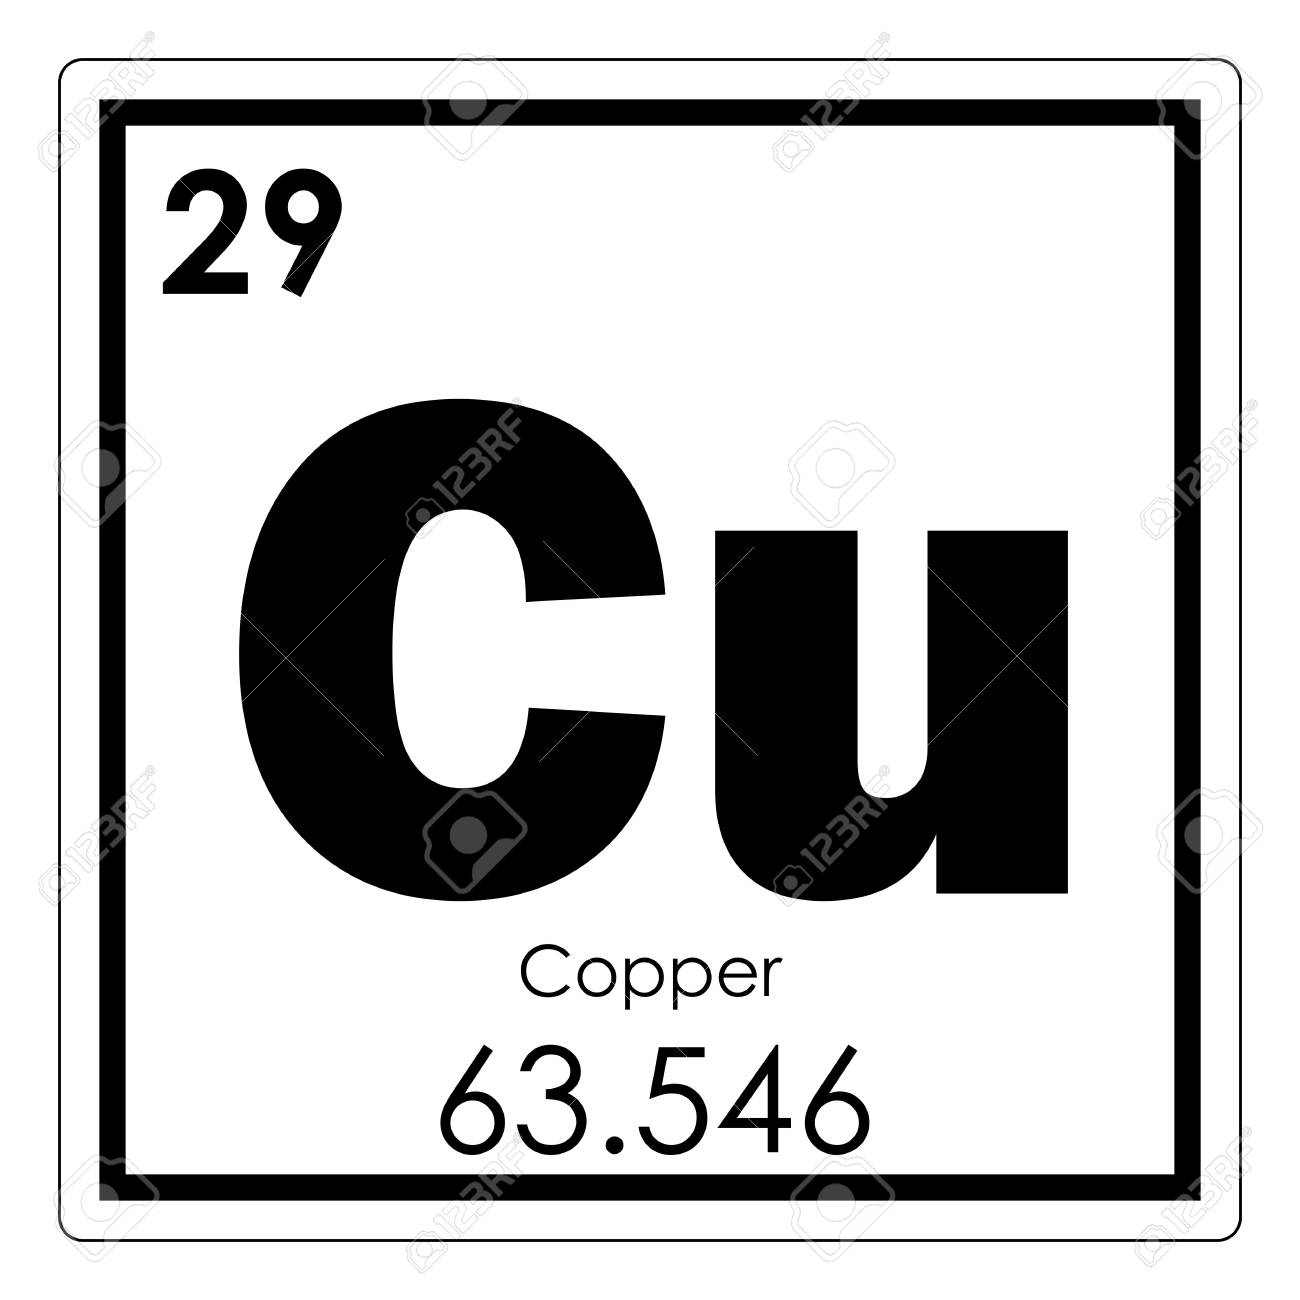 Copper chemical element periodic table science symbol stock photo copper chemical element periodic table science symbol stock photo 93684850 urtaz Gallery